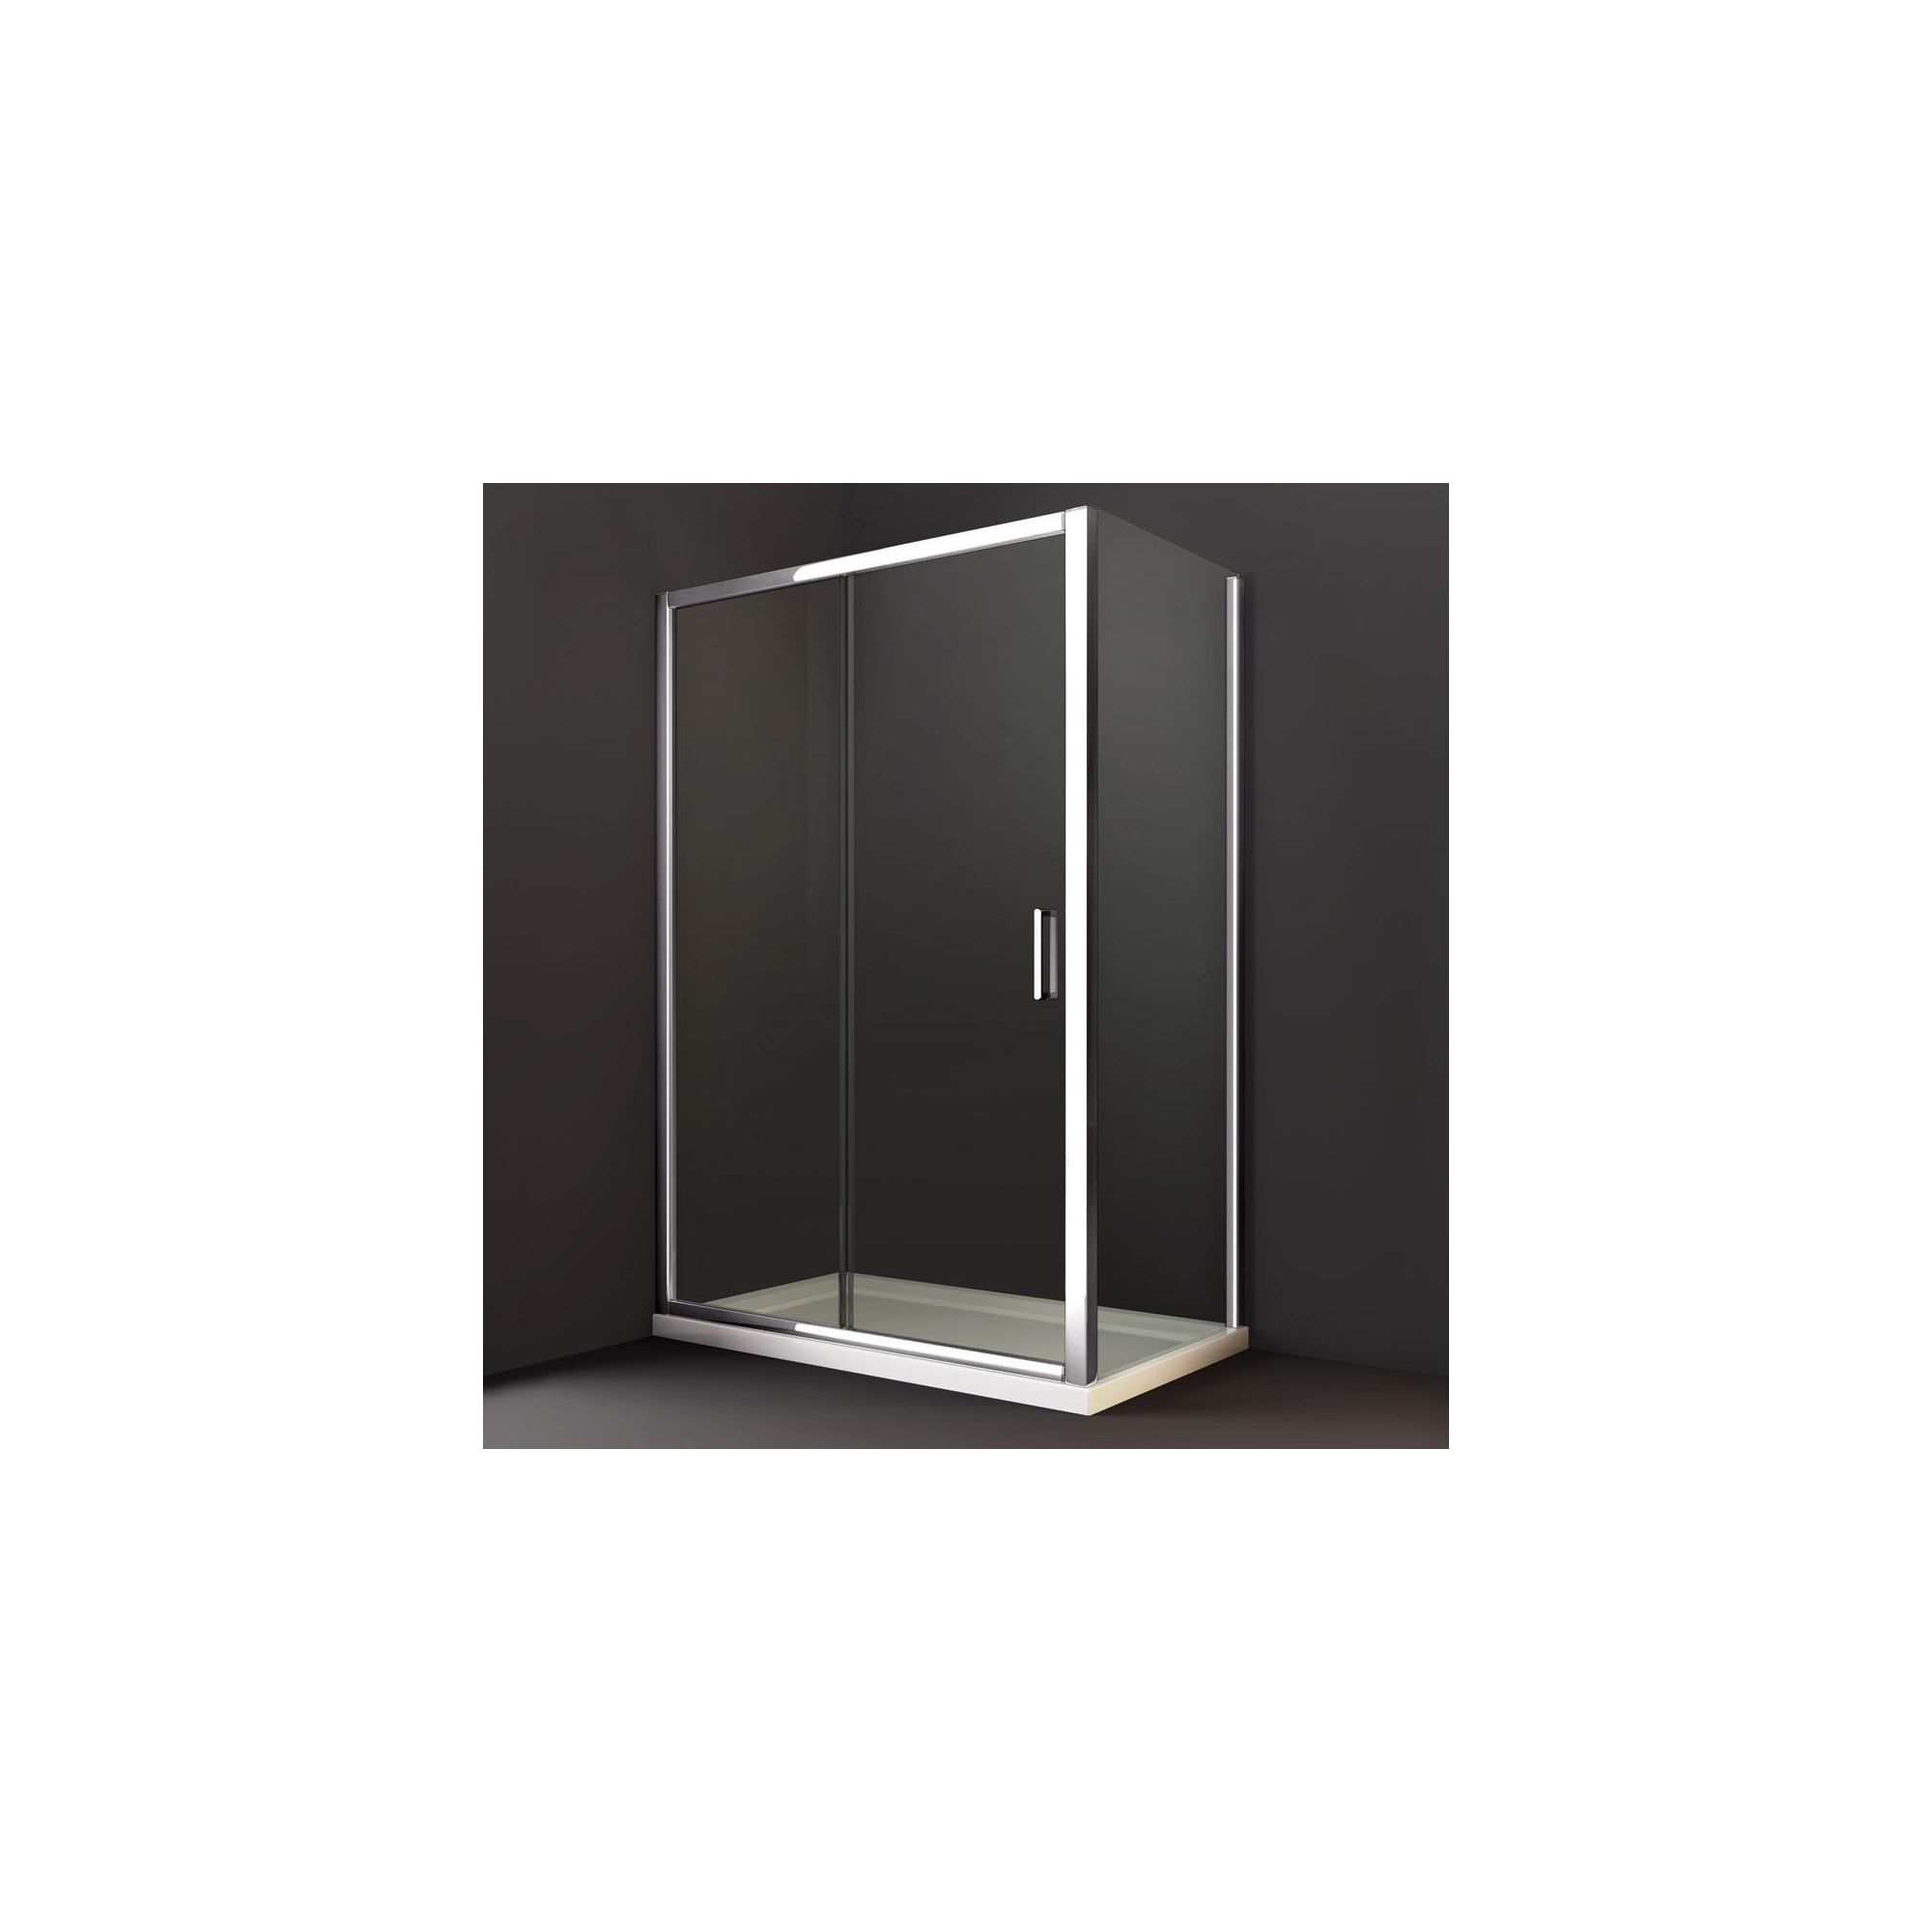 Merlyn Series 8 Sliding Shower Door, 1600mm Wide, Chrome Frame, 8mm Glass at Tesco Direct